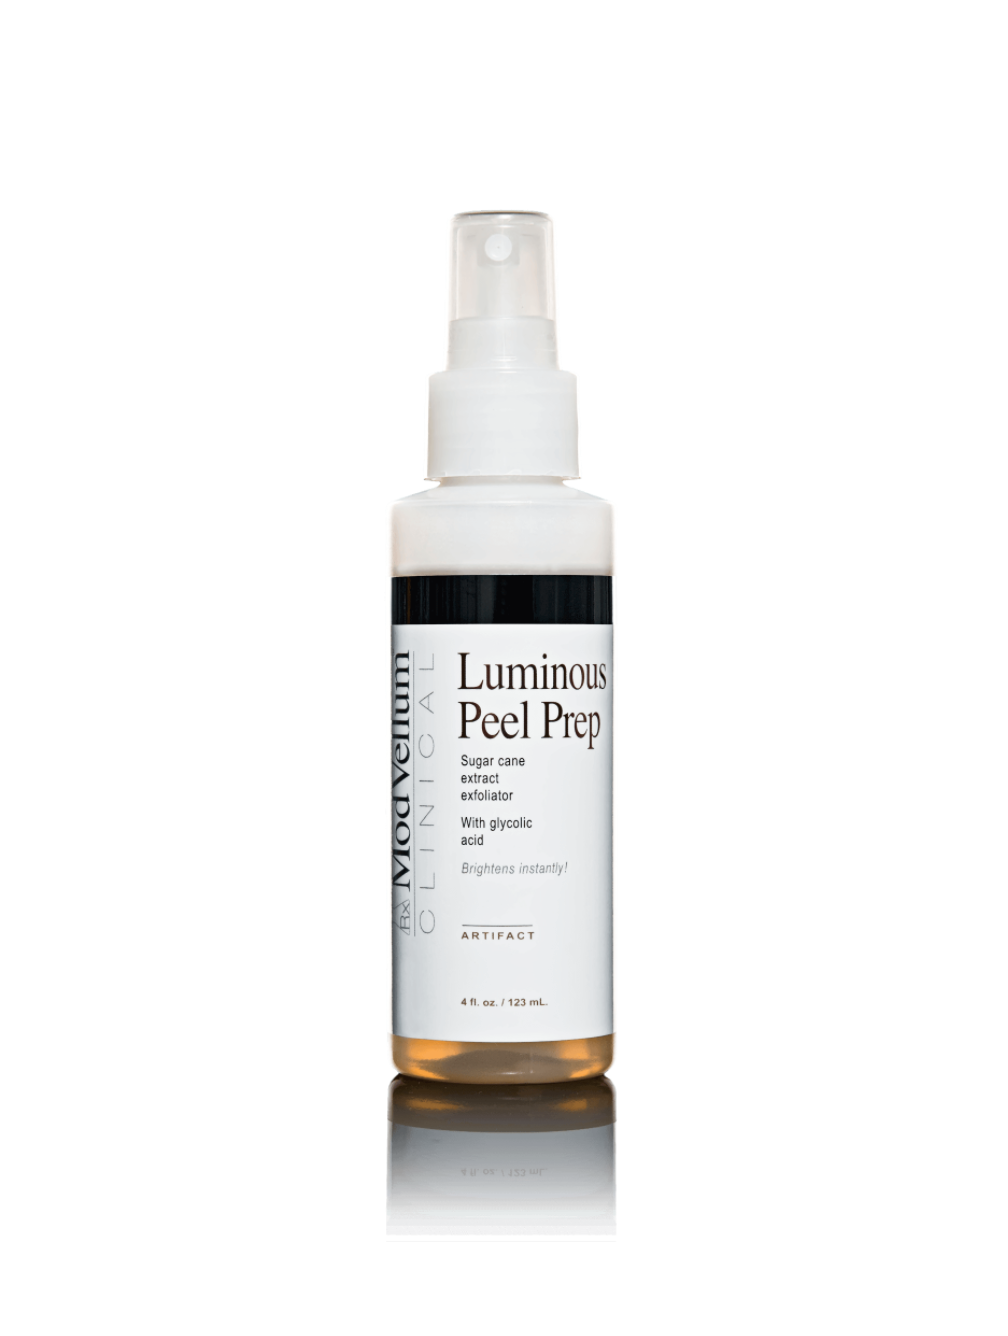 Luminous Peel Prep